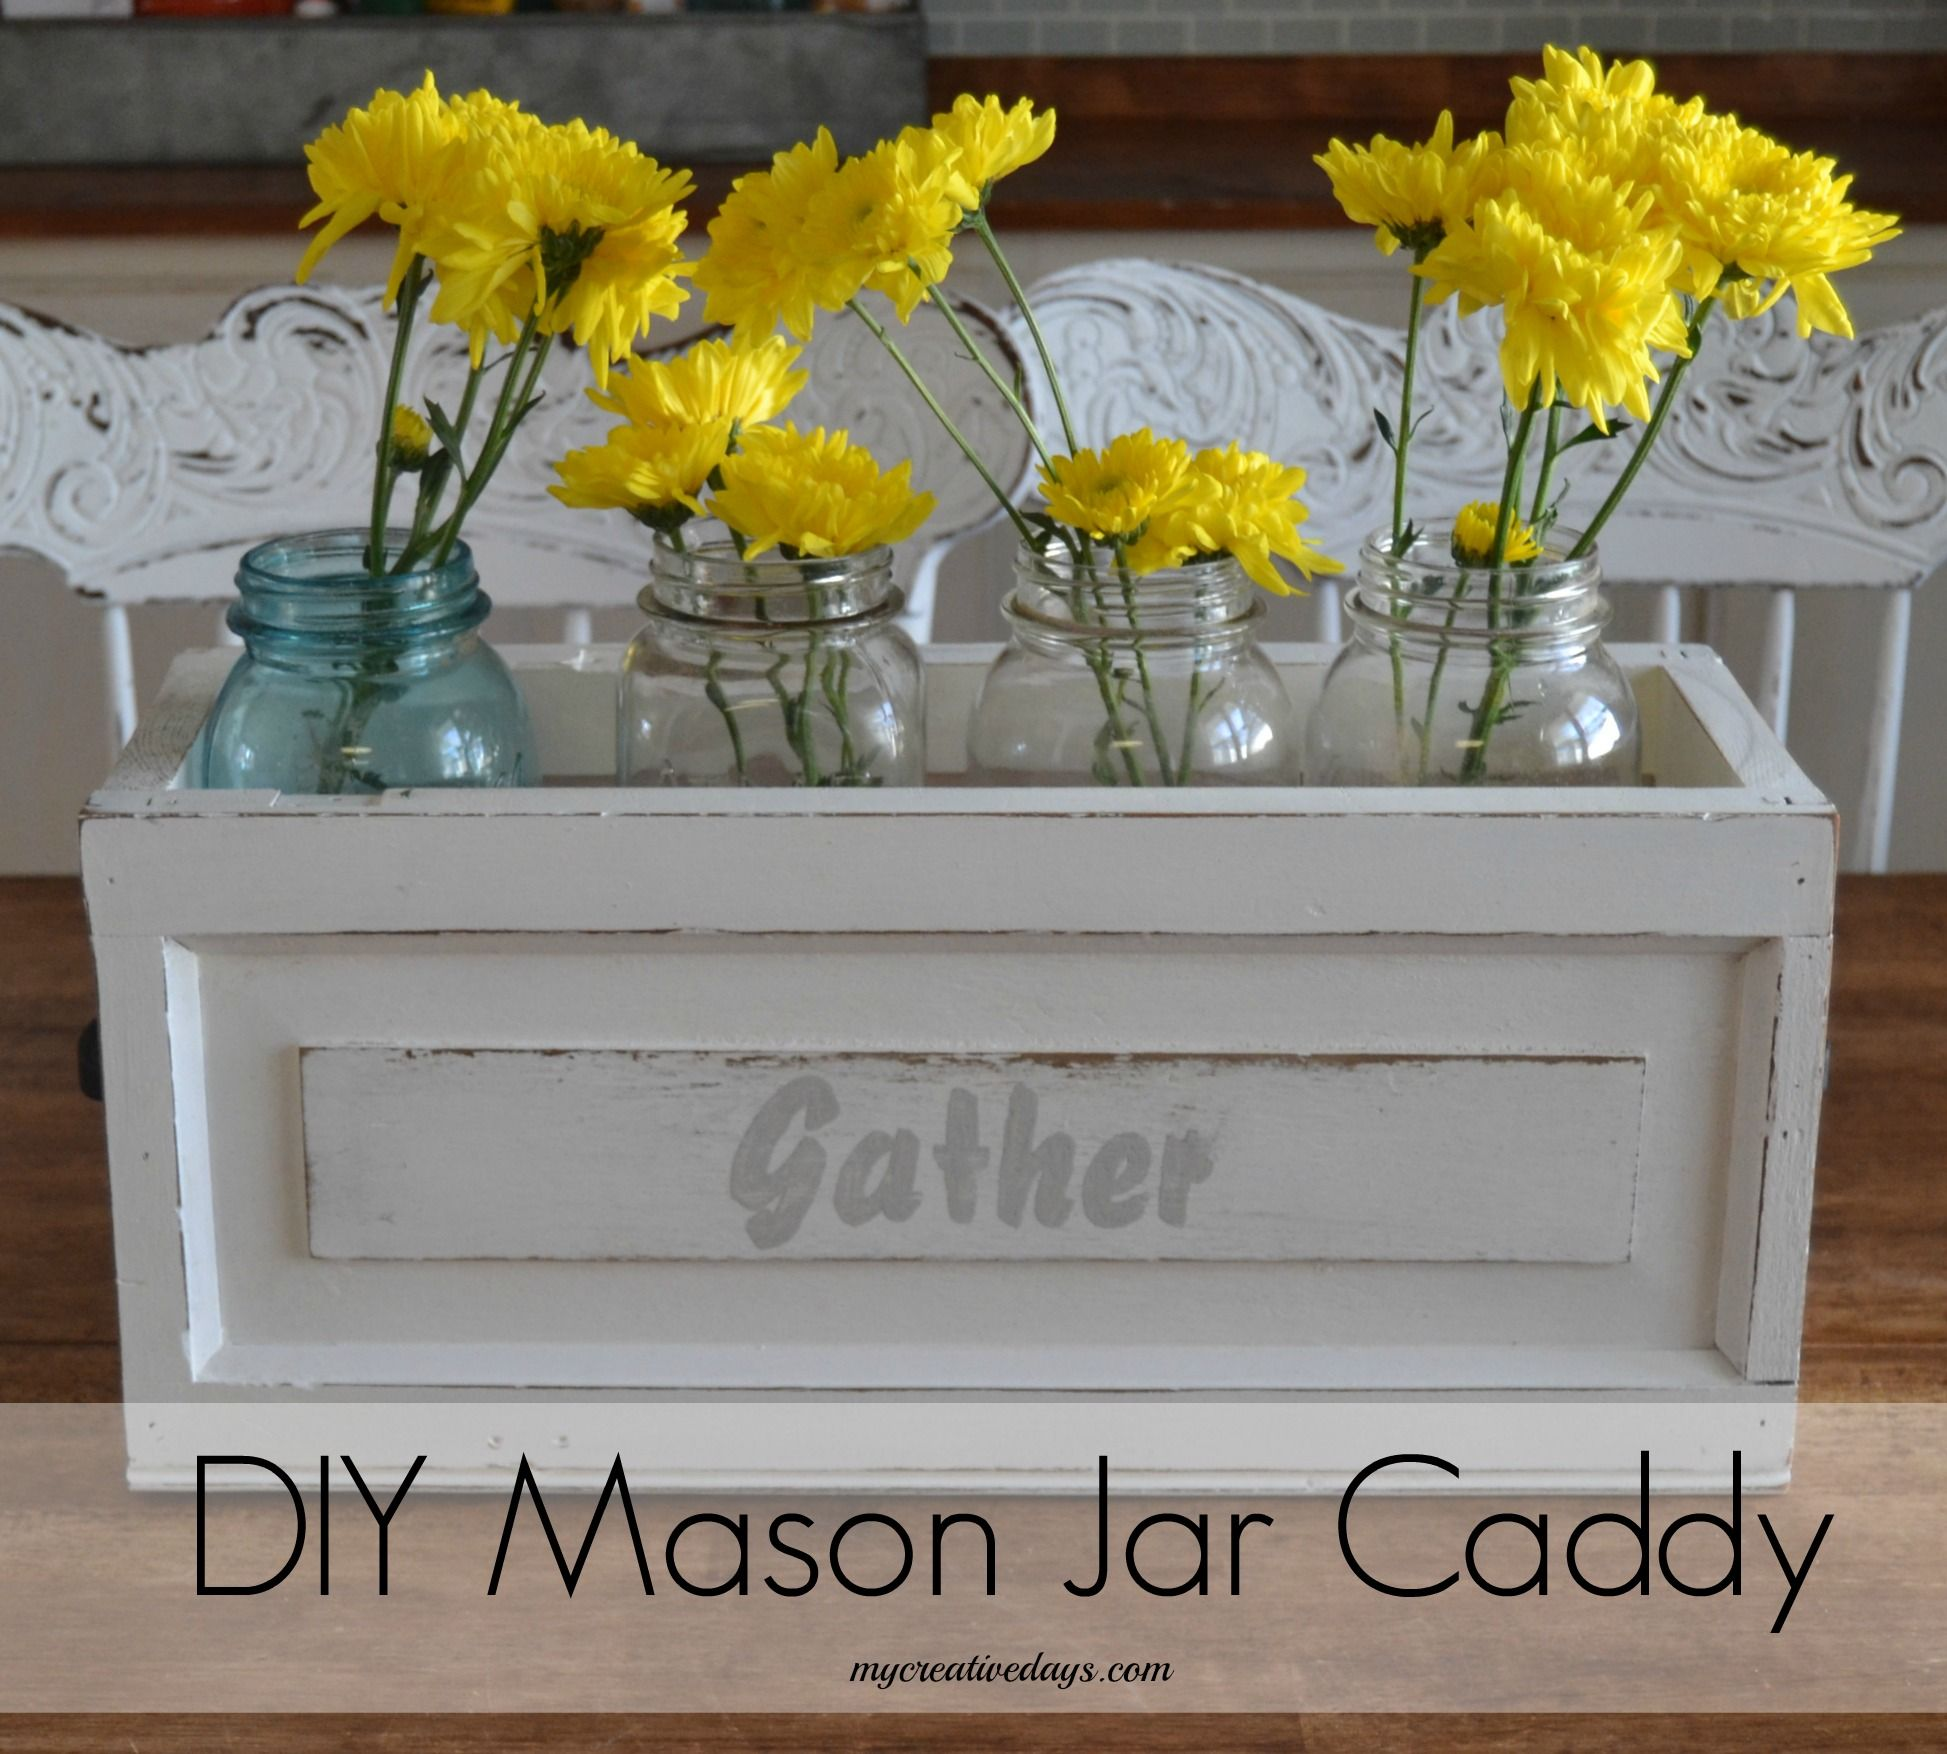 Make a DIY Mason Jar Caddy from parts of an old organ. You can also make this easy caddy from other wood pieces you have lying around. This is a great piece for your table, porch or even outside during a backyard BBQ! mycreativedays.com